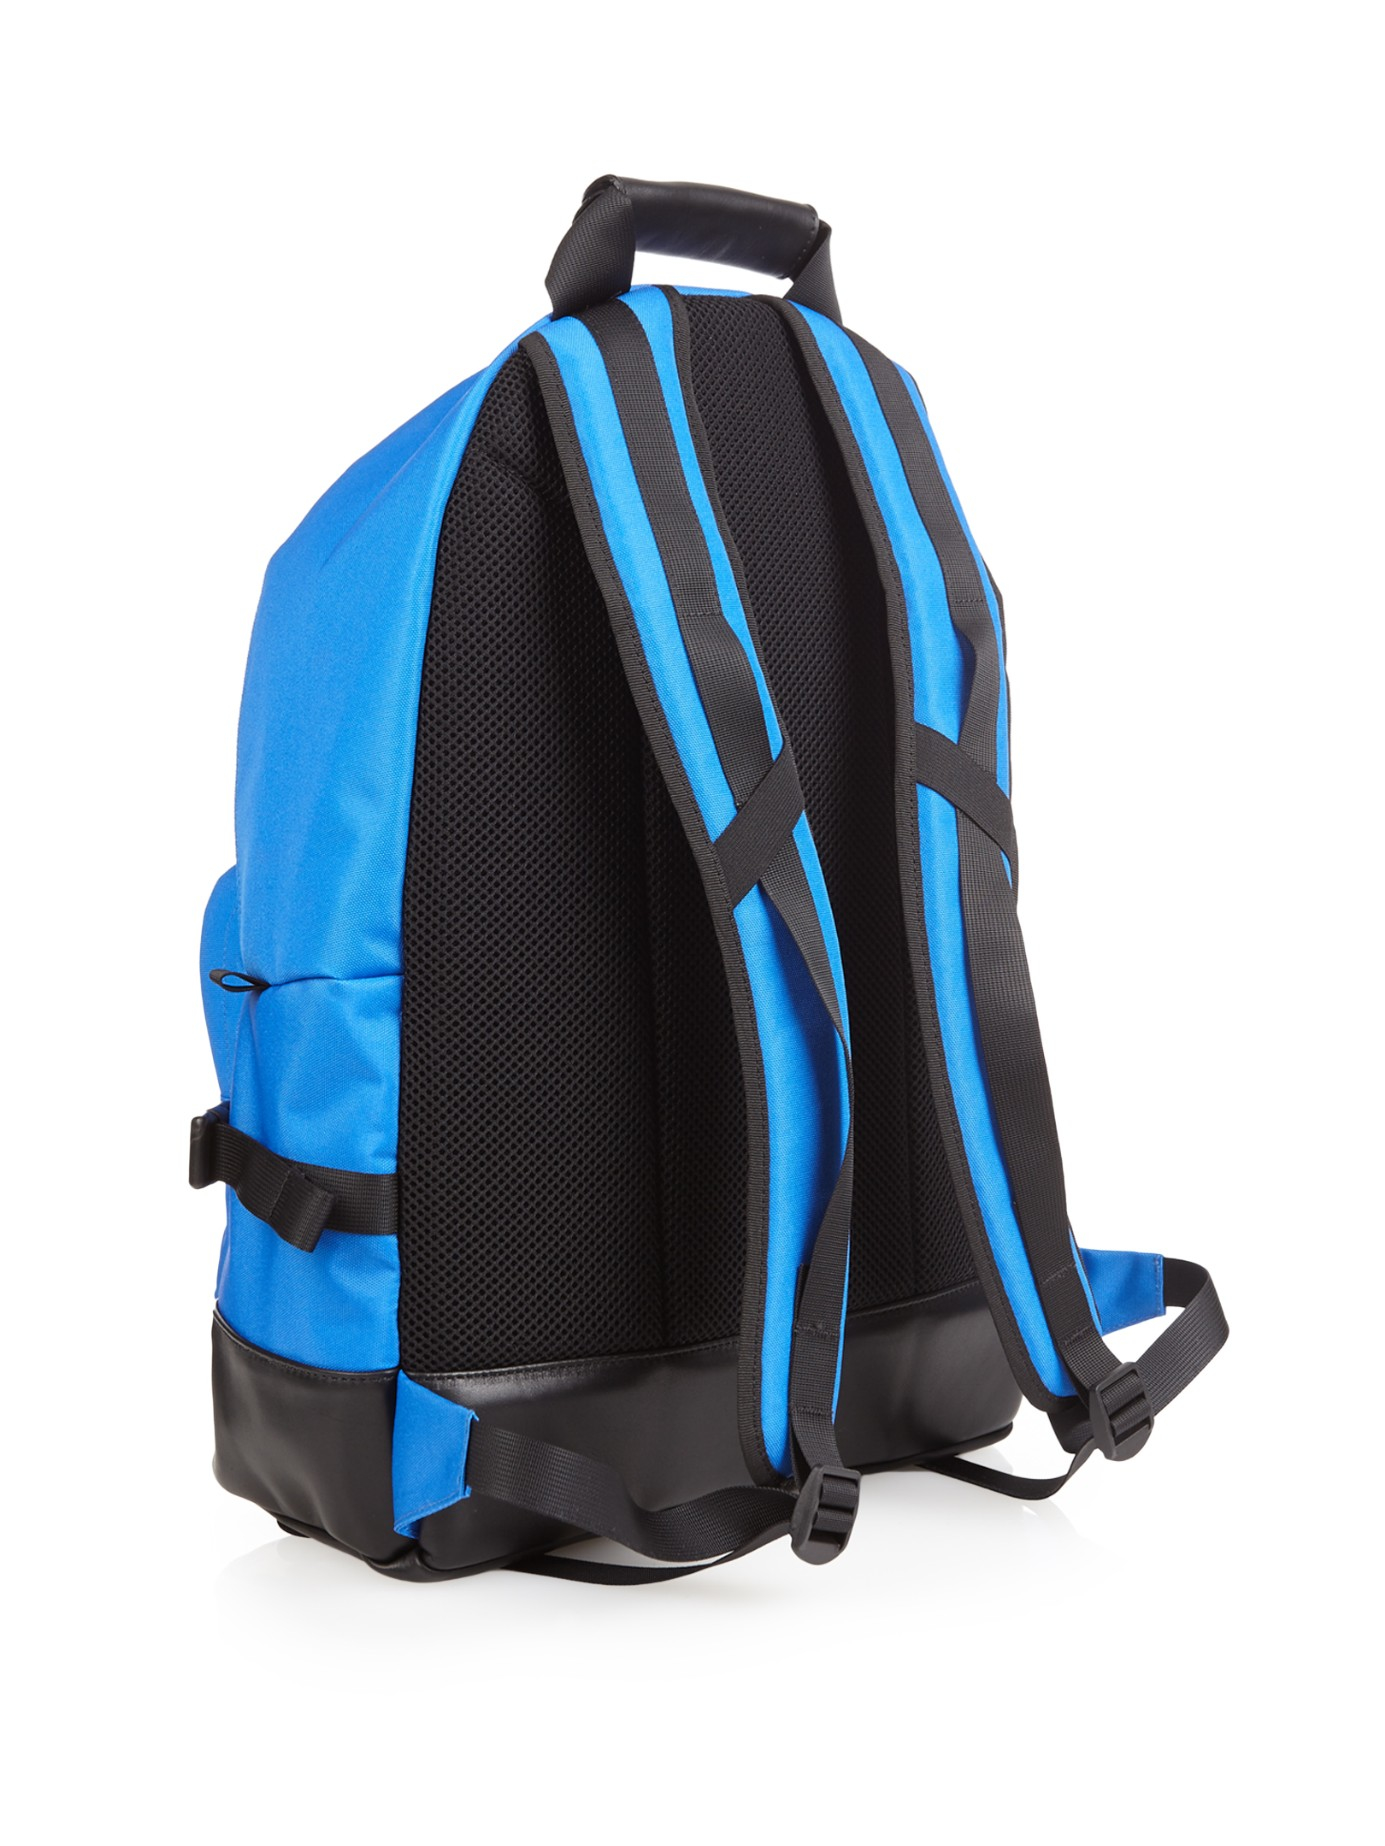 Lyst - AMI Nylon-canvas Backpack in Blue for Men 5eb140429e99b